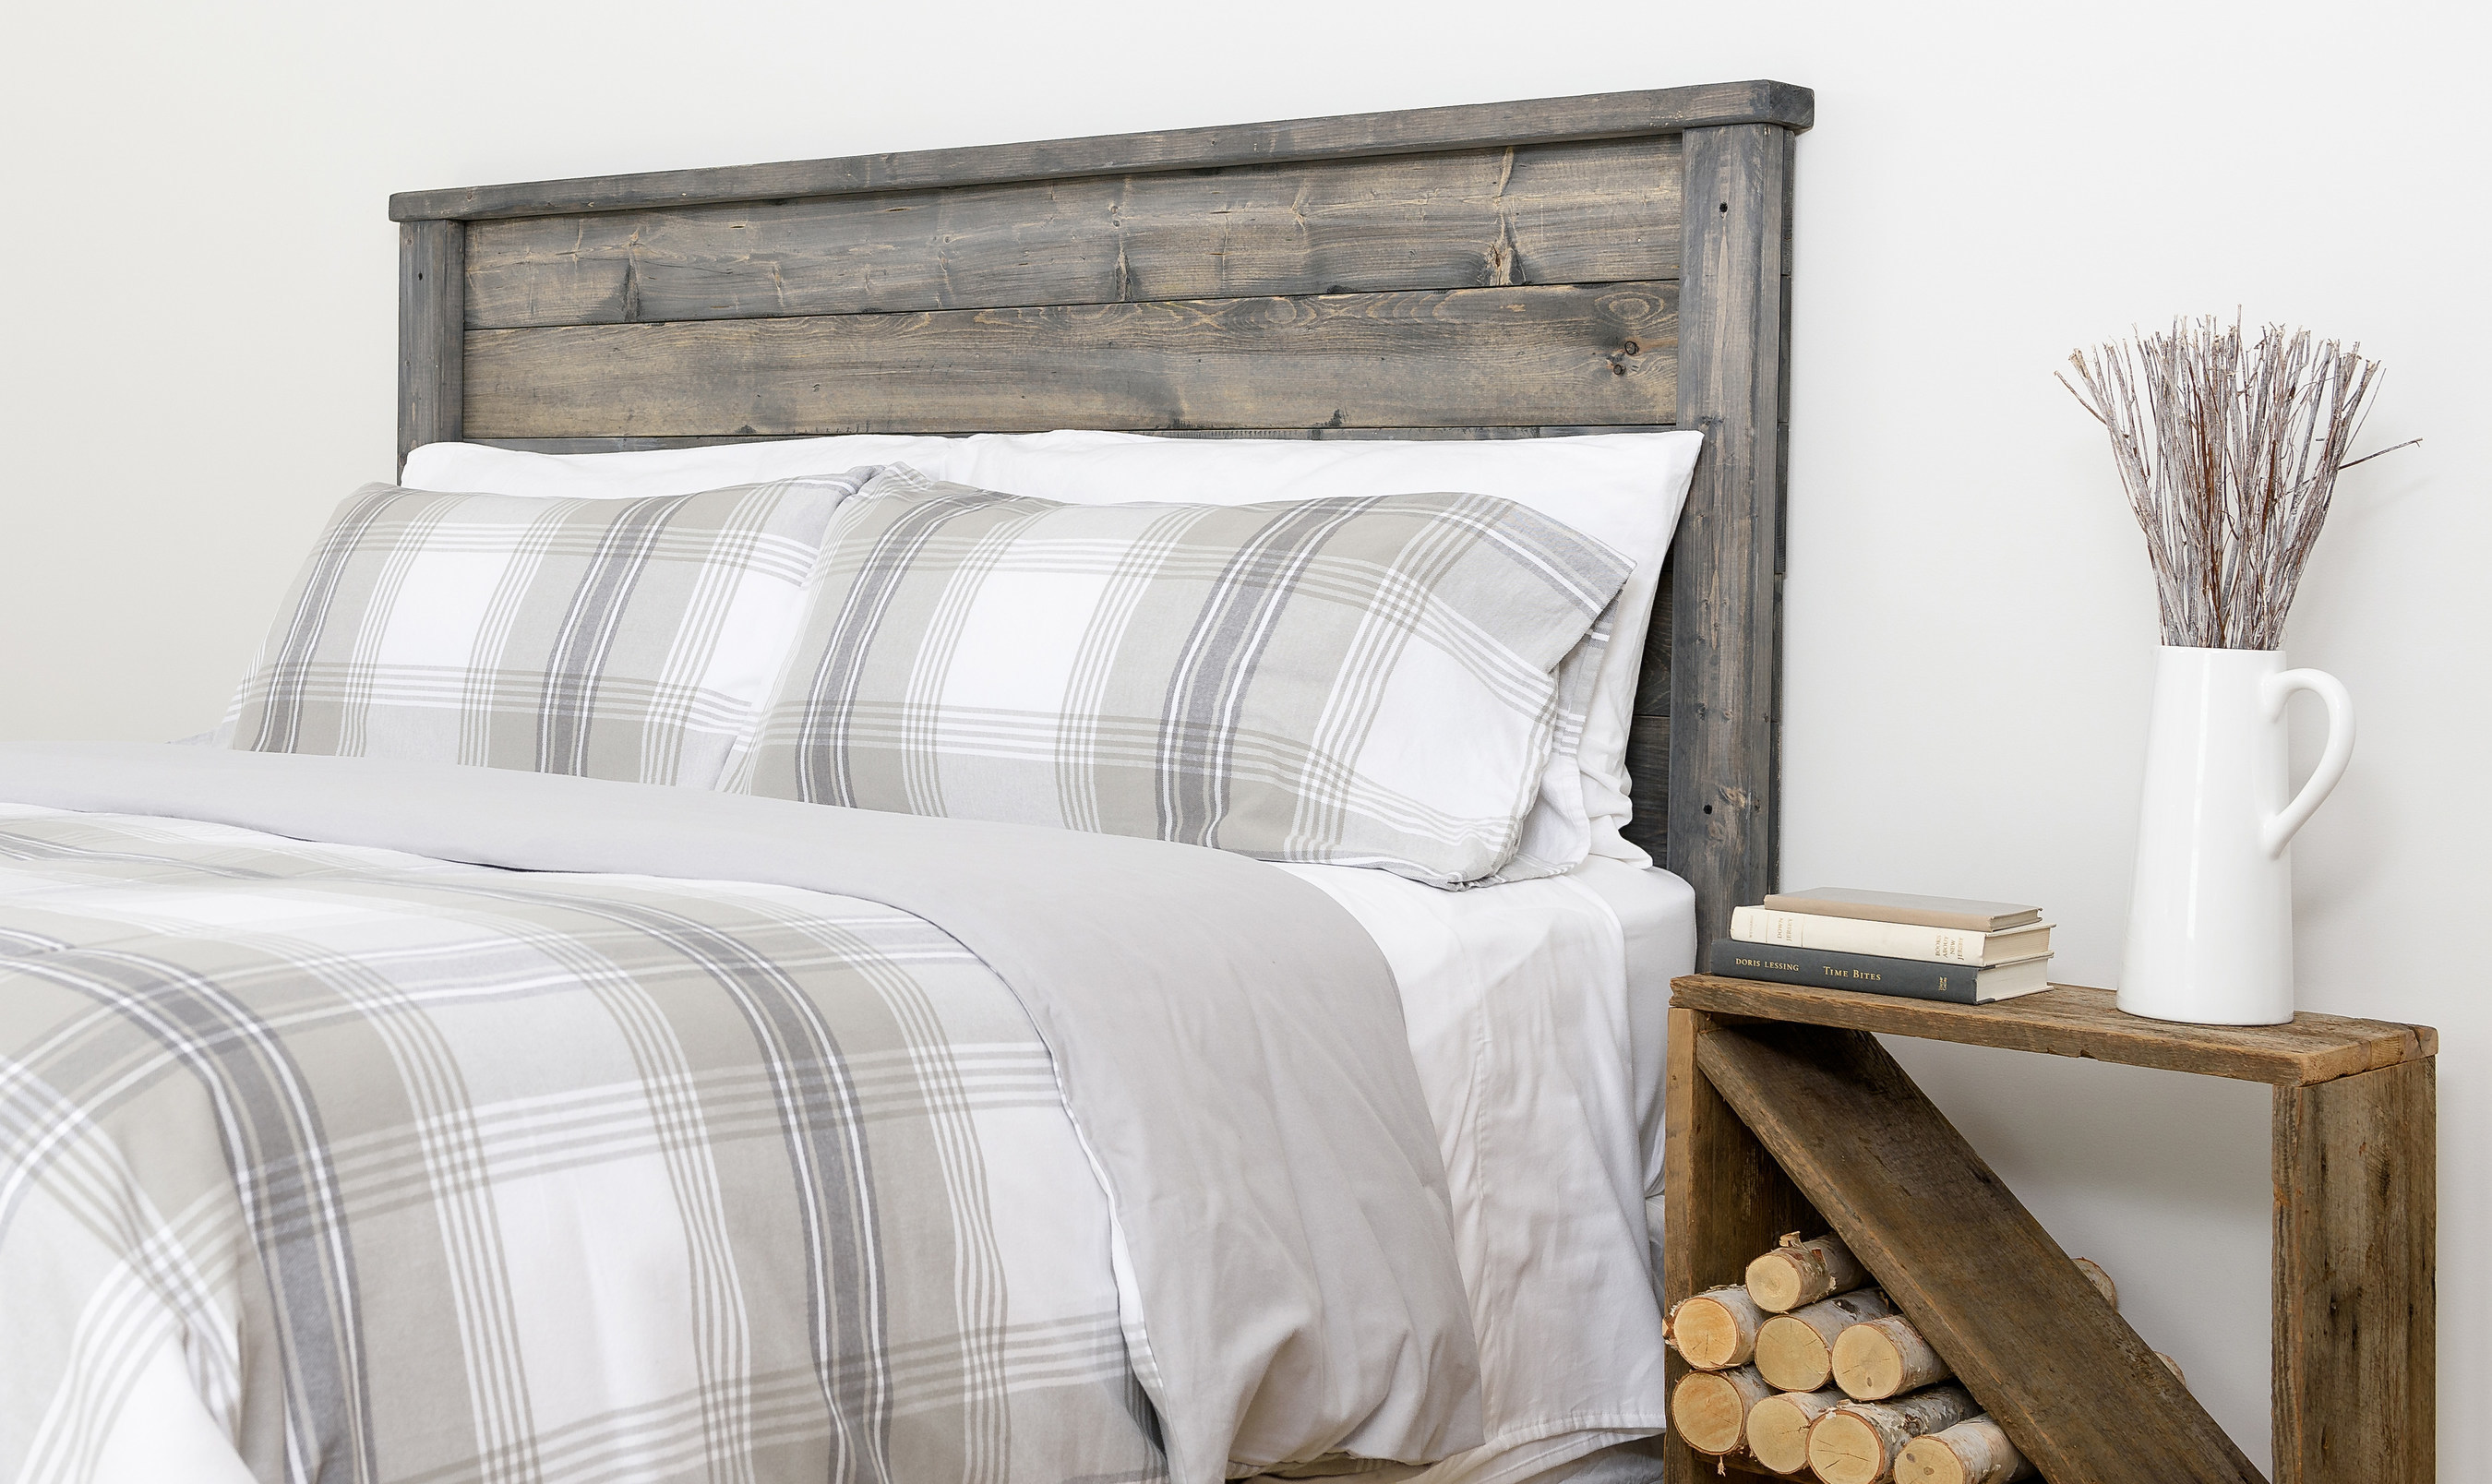 Home Textiles Innovator Boll Branch Continues Industry Disruption Launches Breakthrough Flannel Bedding Line